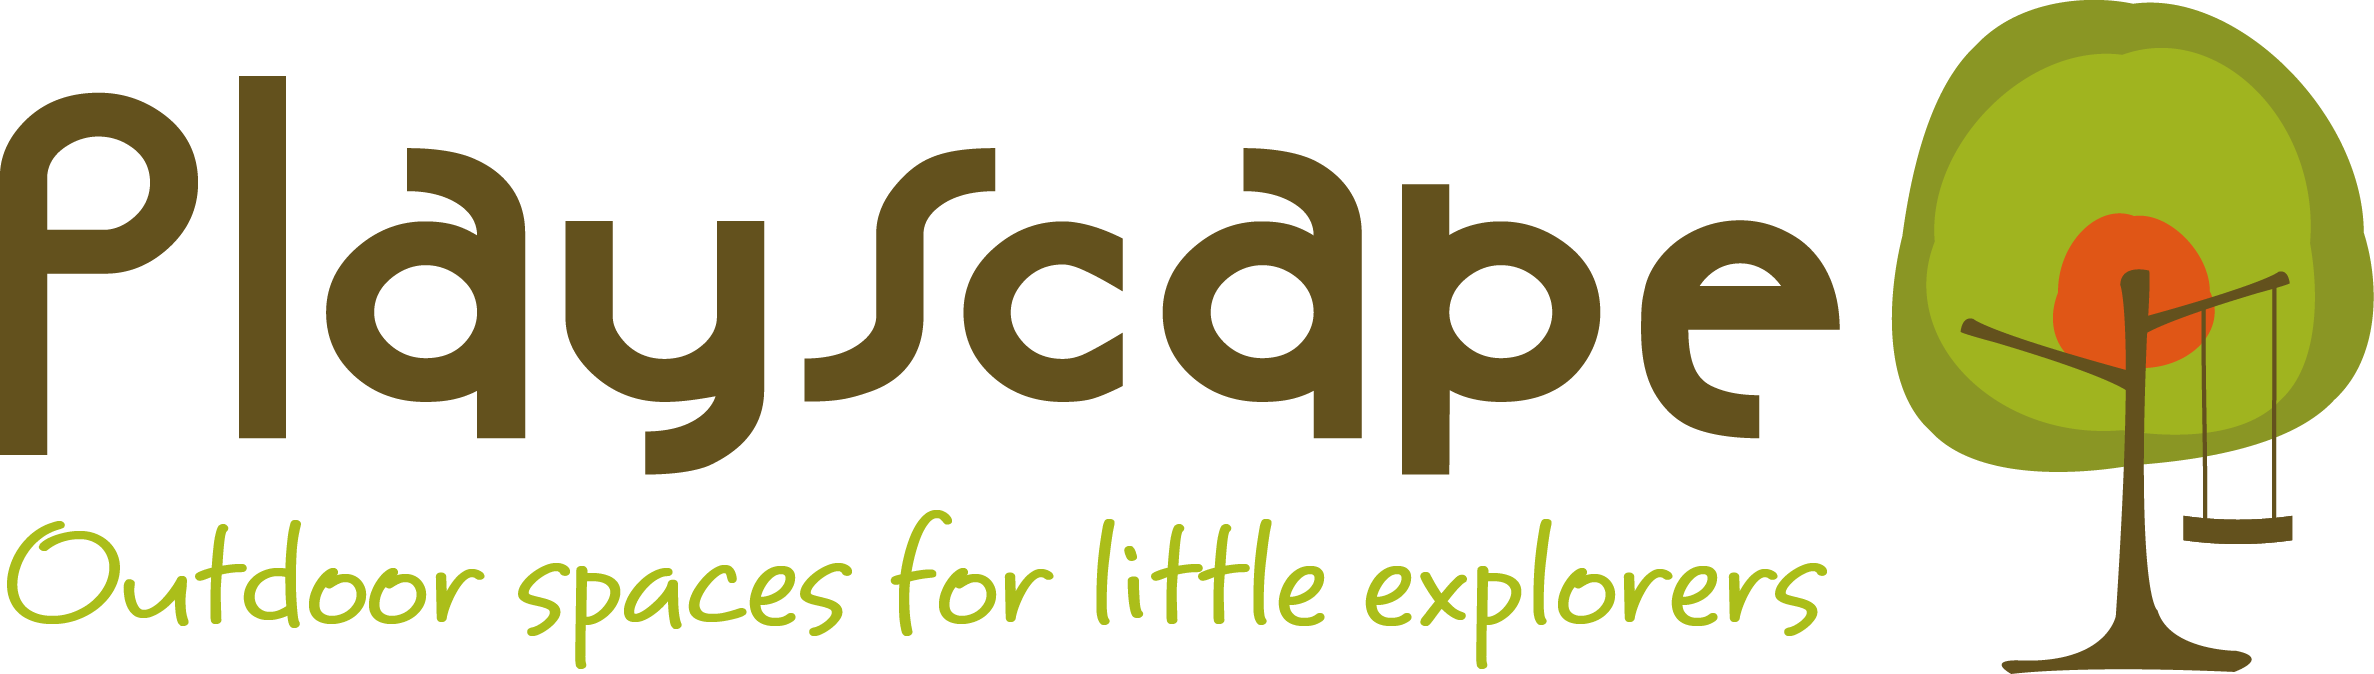 Playscape_Logo_2018.png